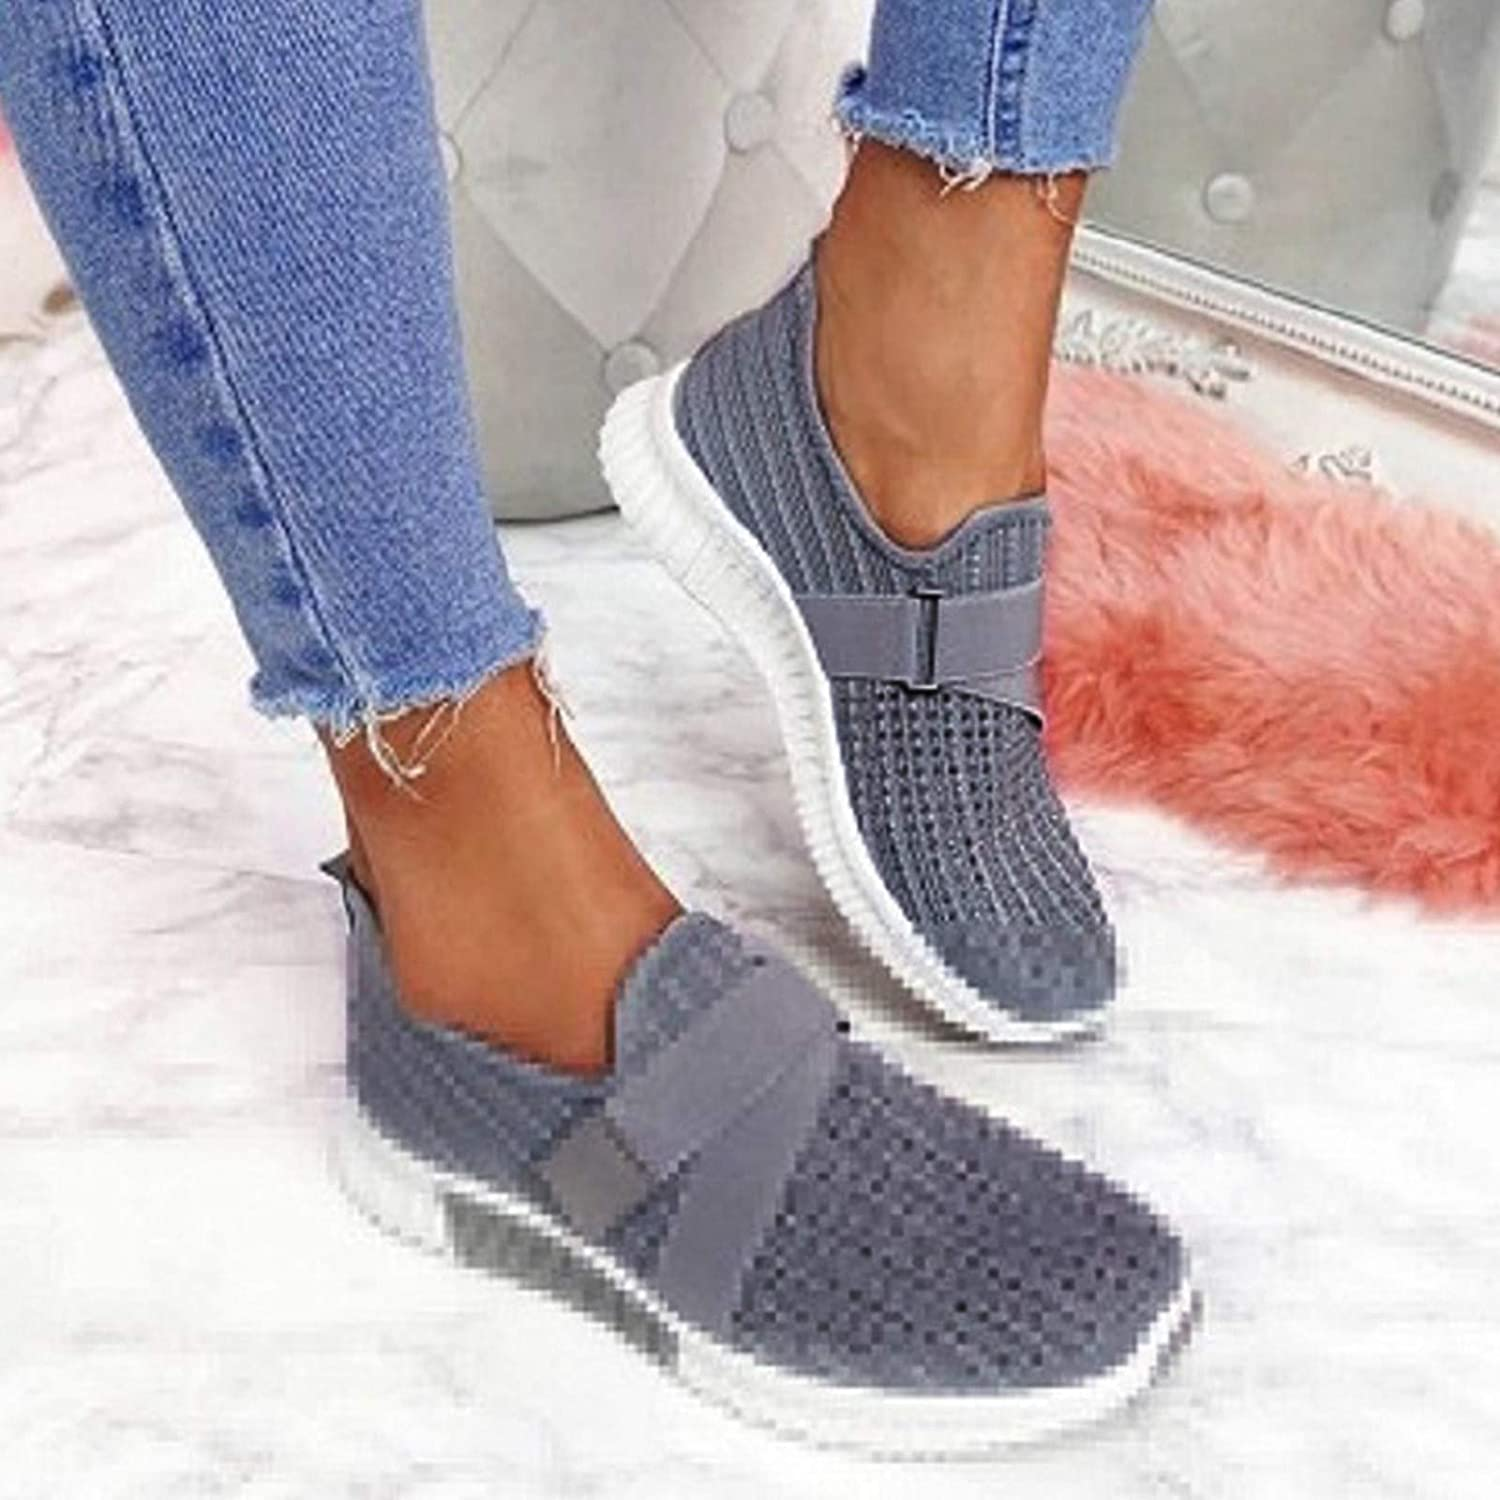 ZYAPCNGN Womens Sneaker Casual Runing Sport Shoes Mesh Breathable Slip On Comfortable Lightweight Walking Shoes